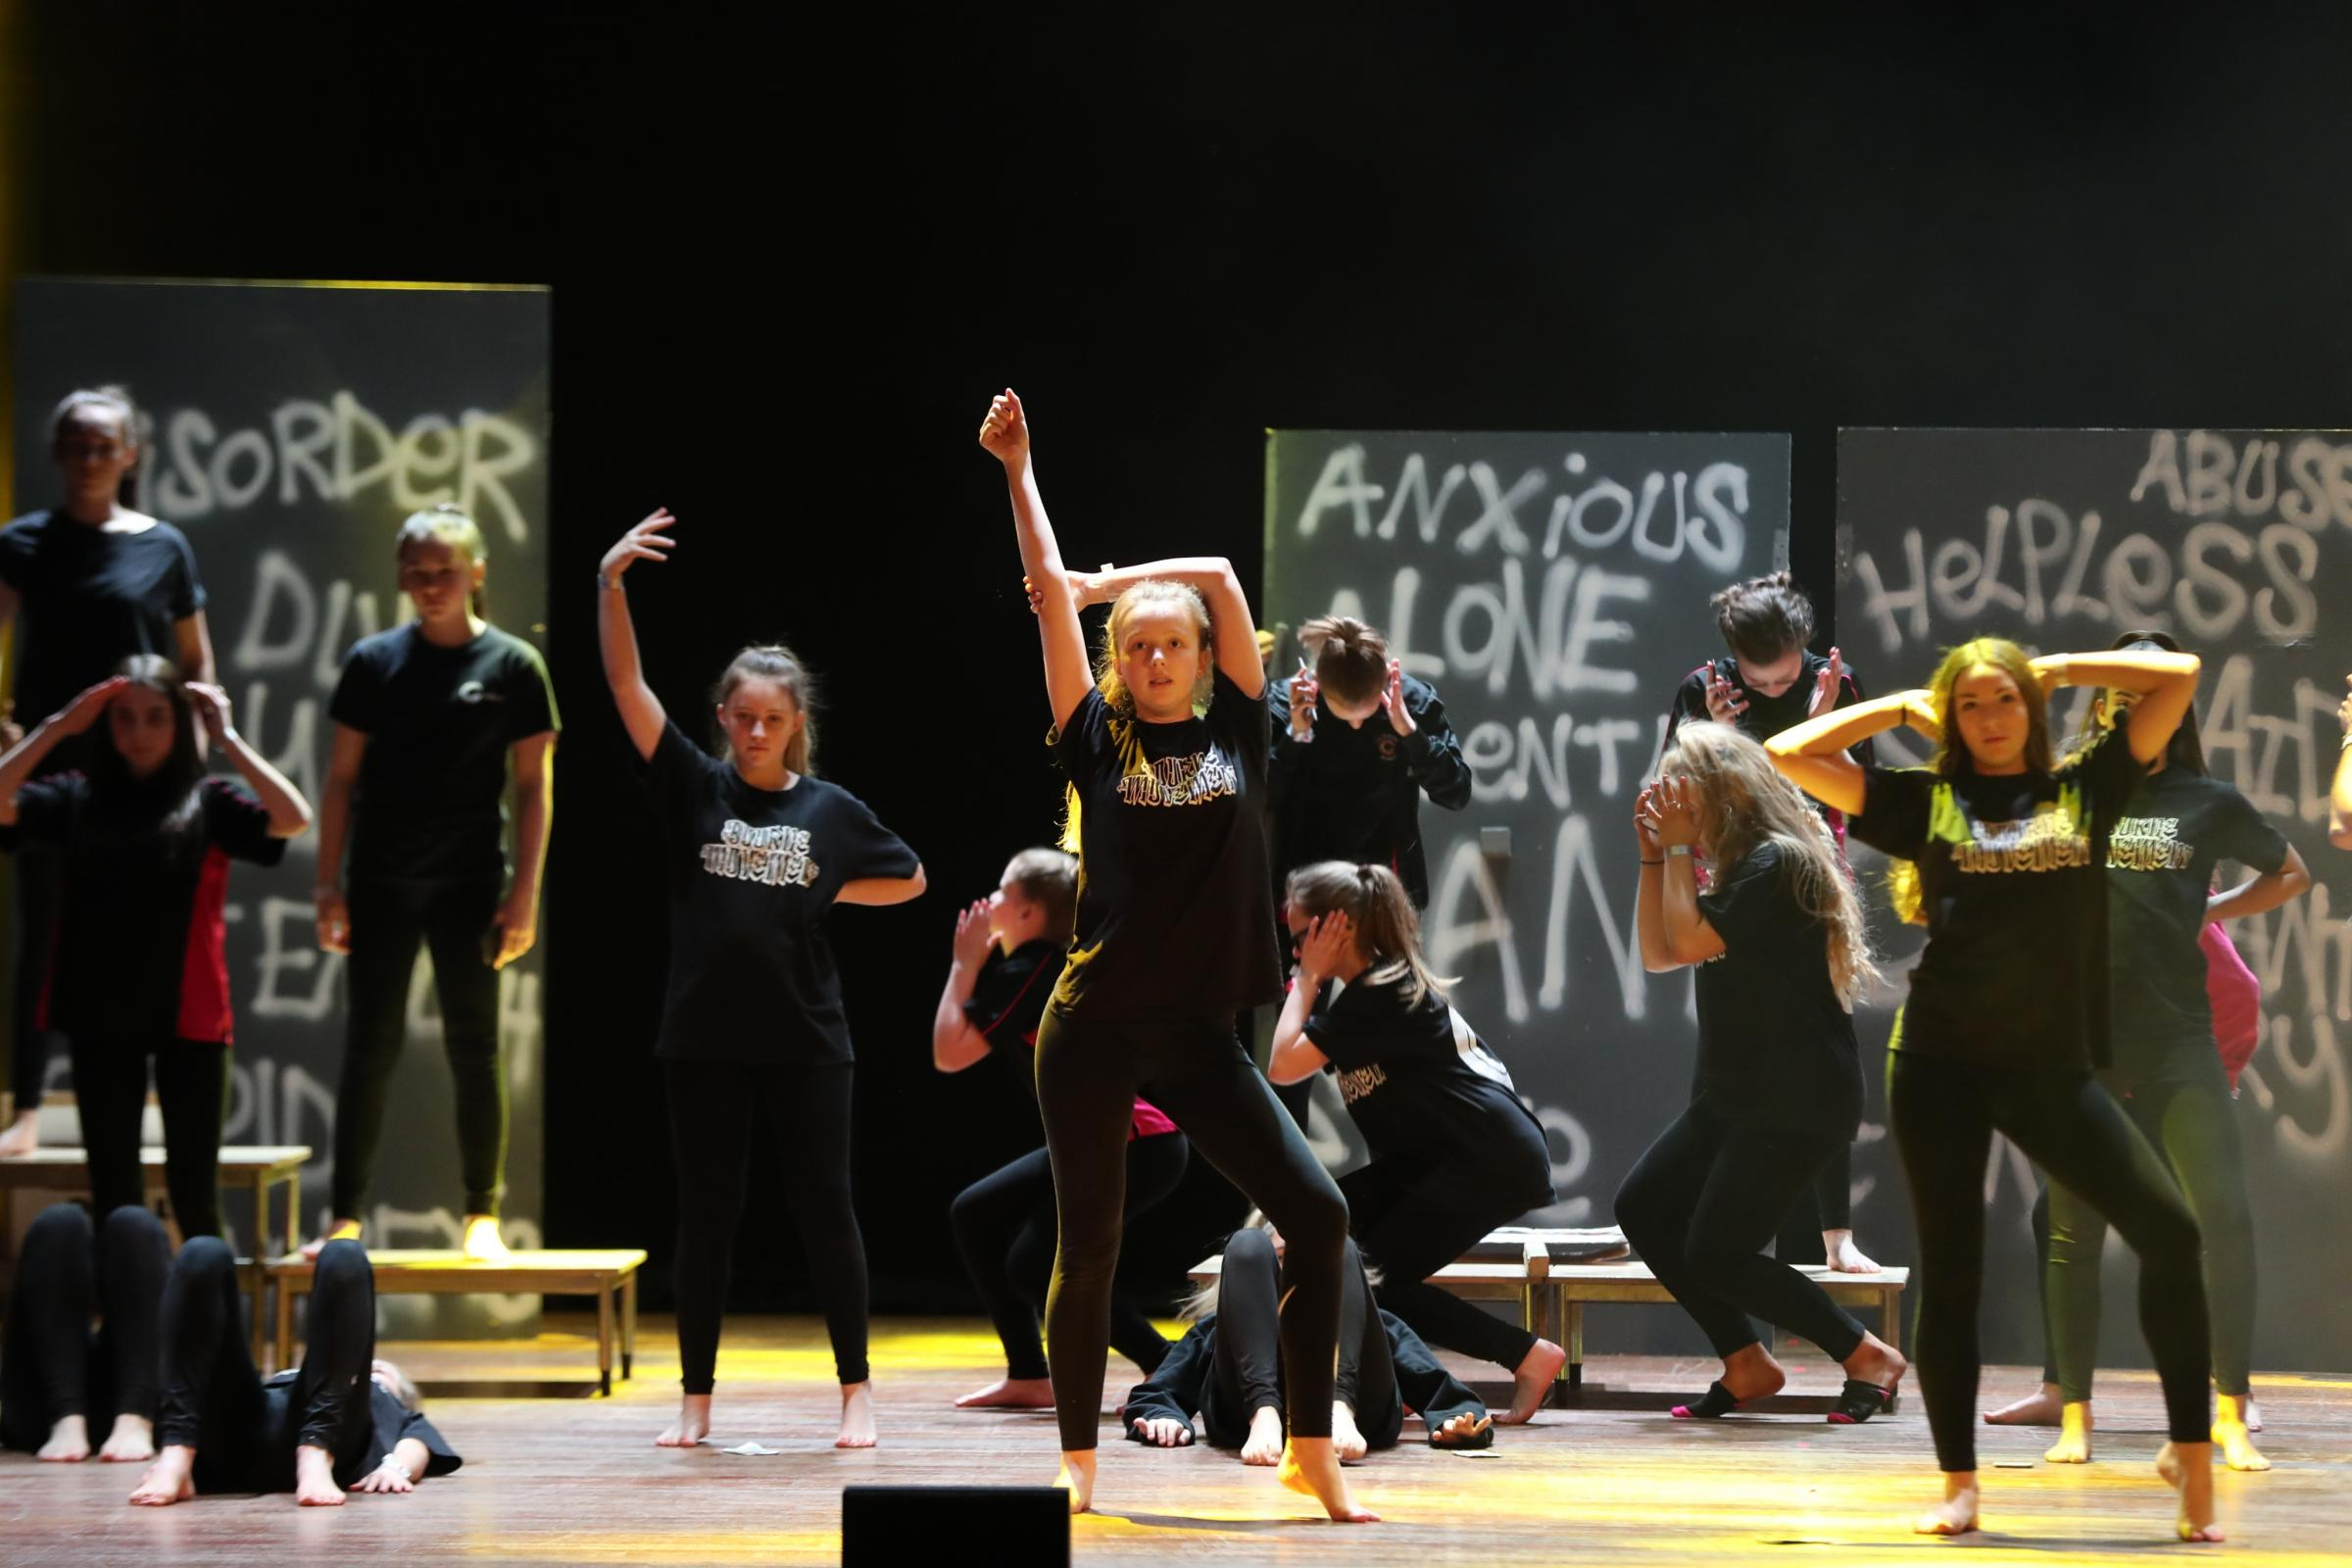 The Bourne Academy rehearing for Bournemouth's Rock Challenge heat 2019. Picture: Bournemouth Daily Echo